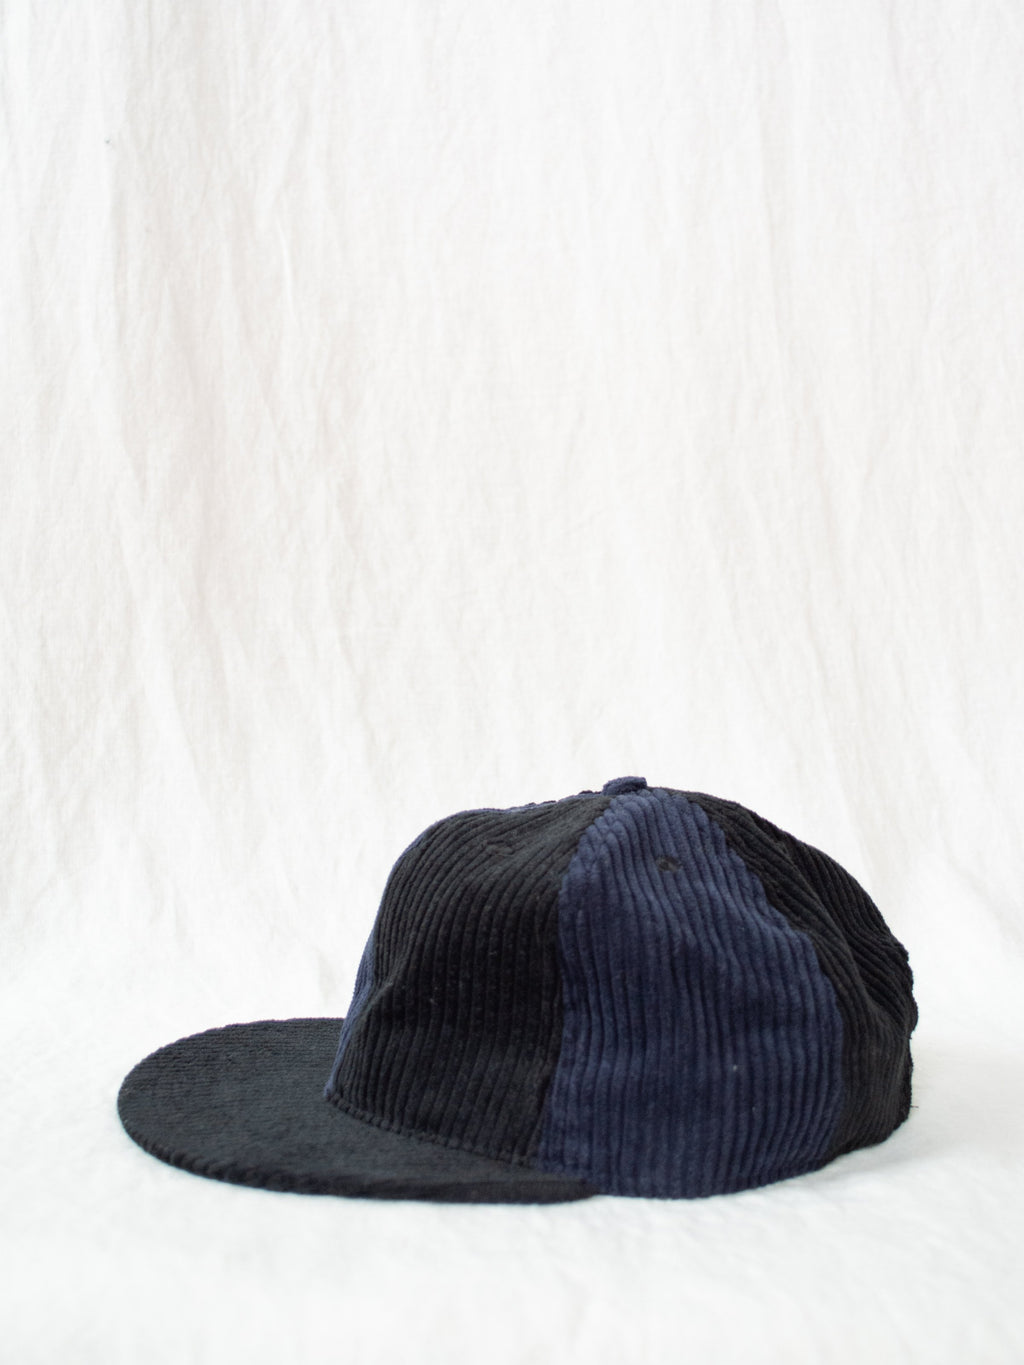 Namu Shop - paa Ball Cap - Black/Navy